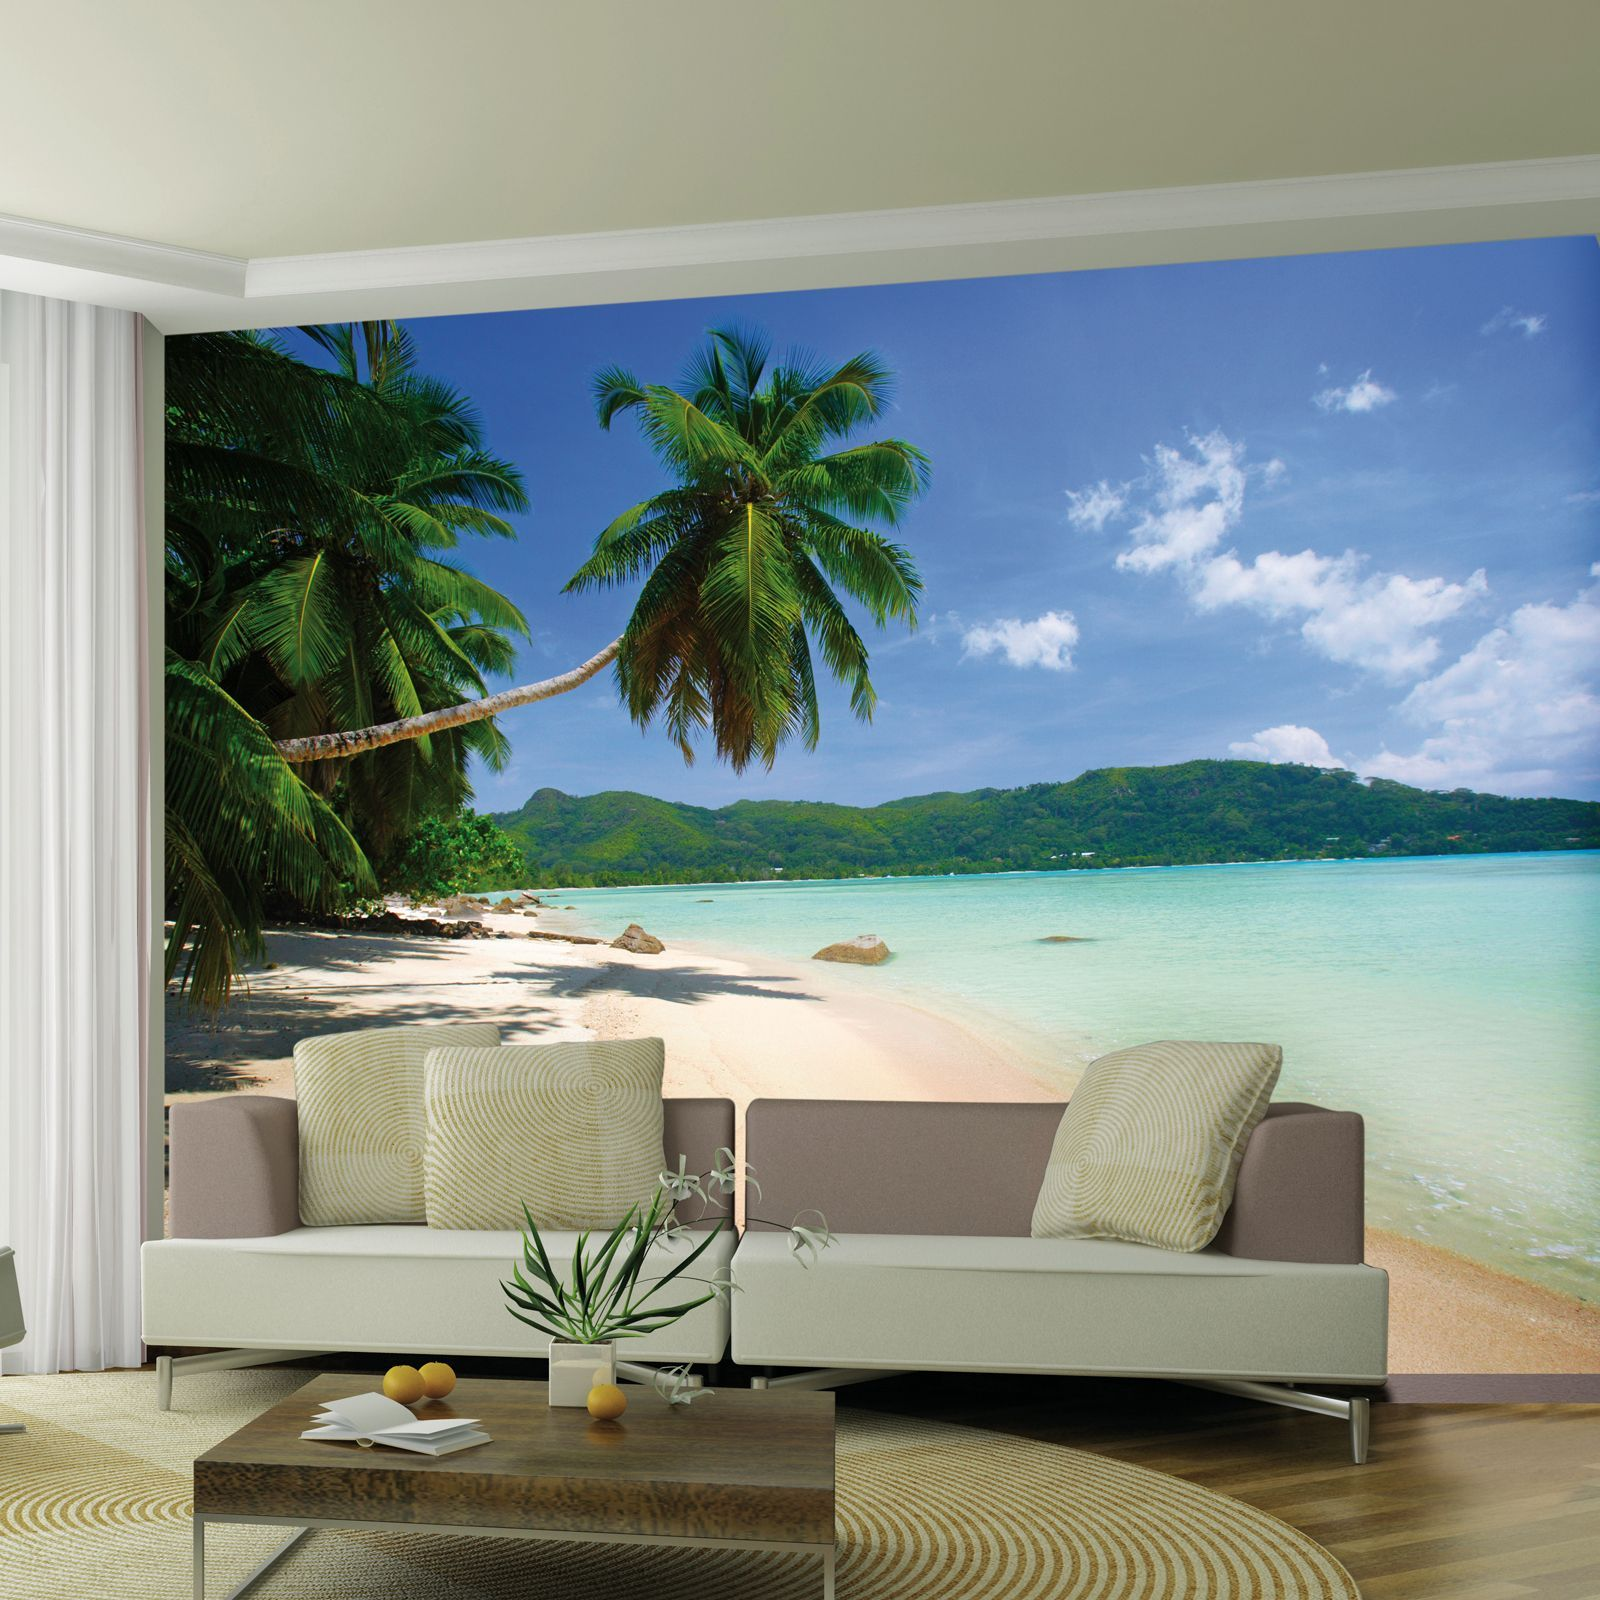 Large wallpaper feature wall murals landscapes for Wallpaper decor